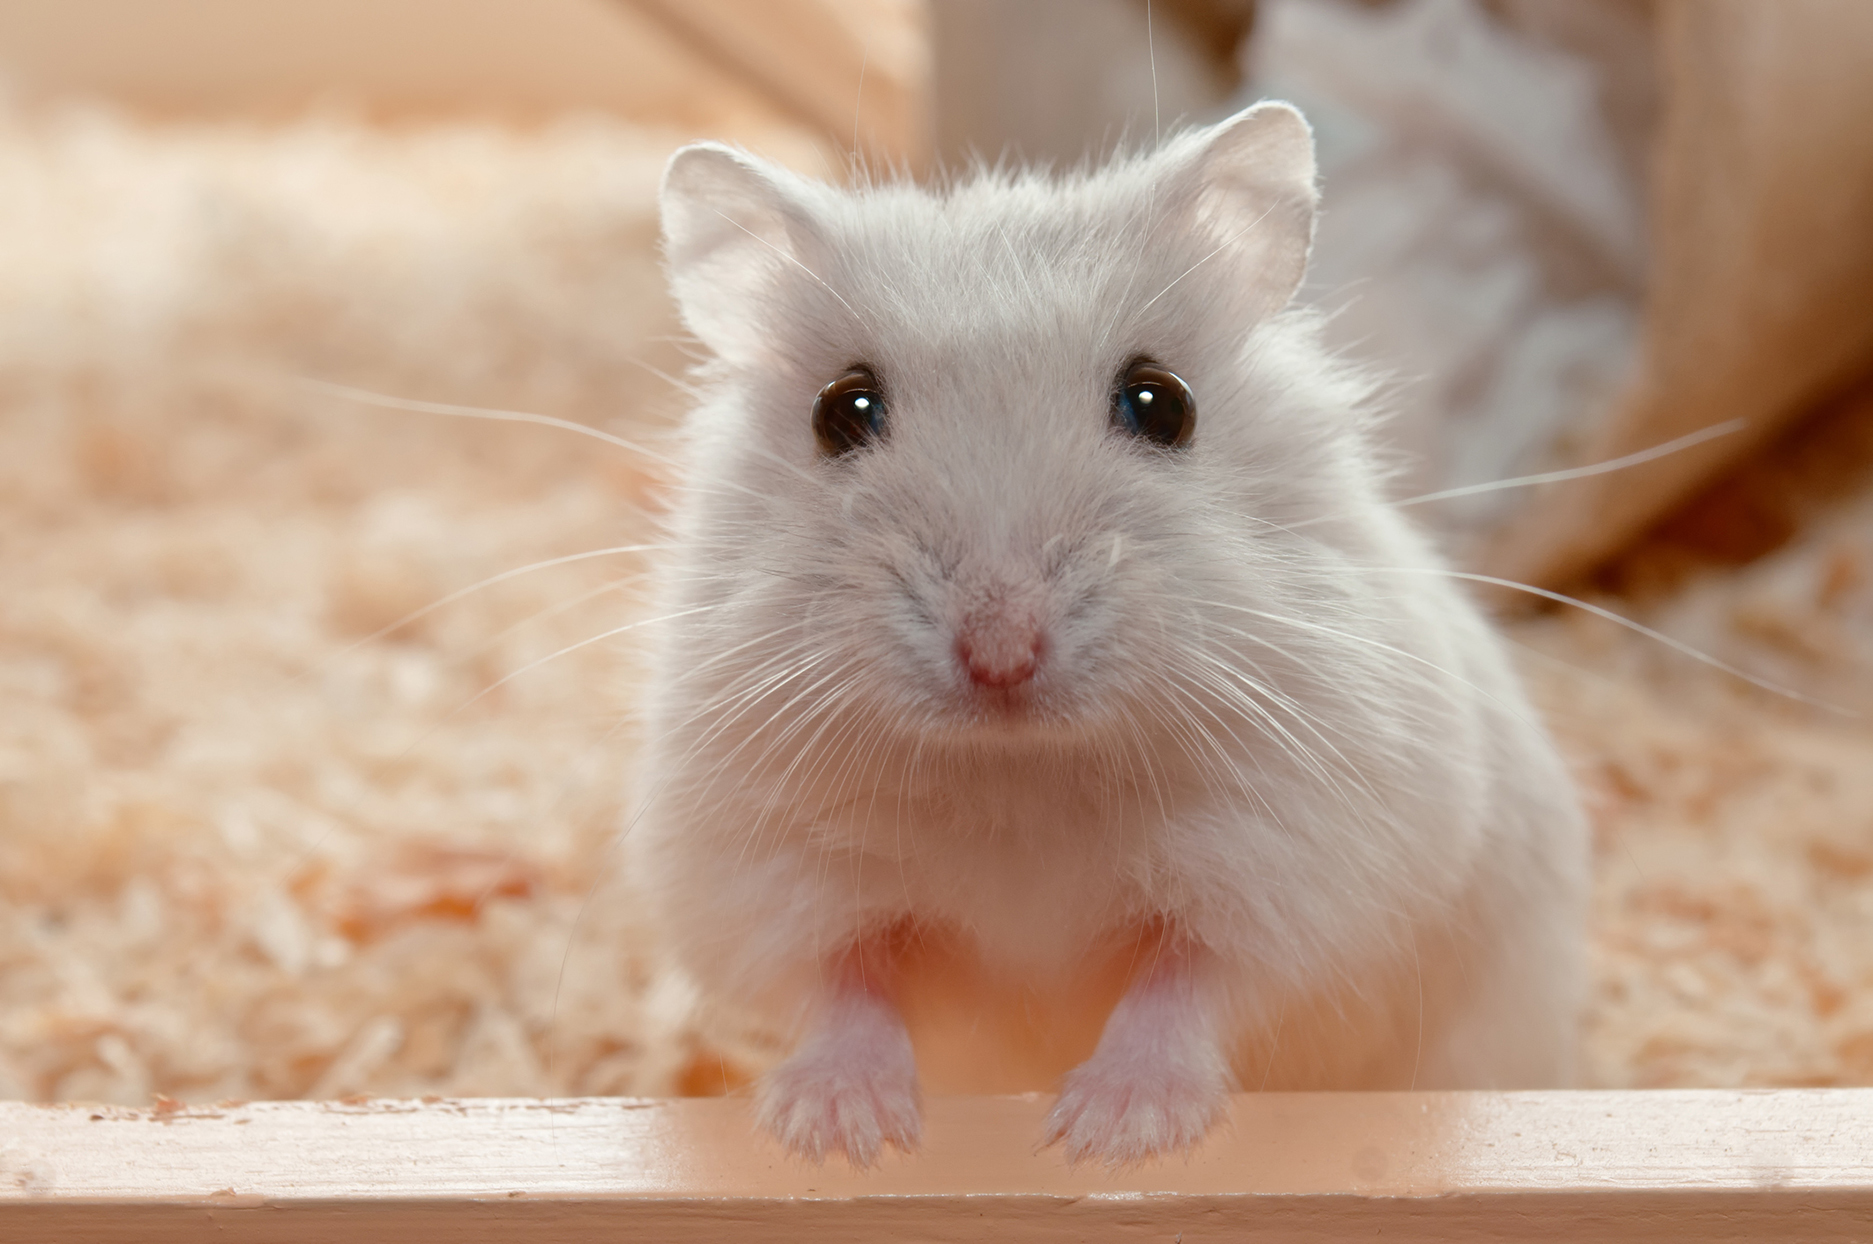 A small white hamster in a cage